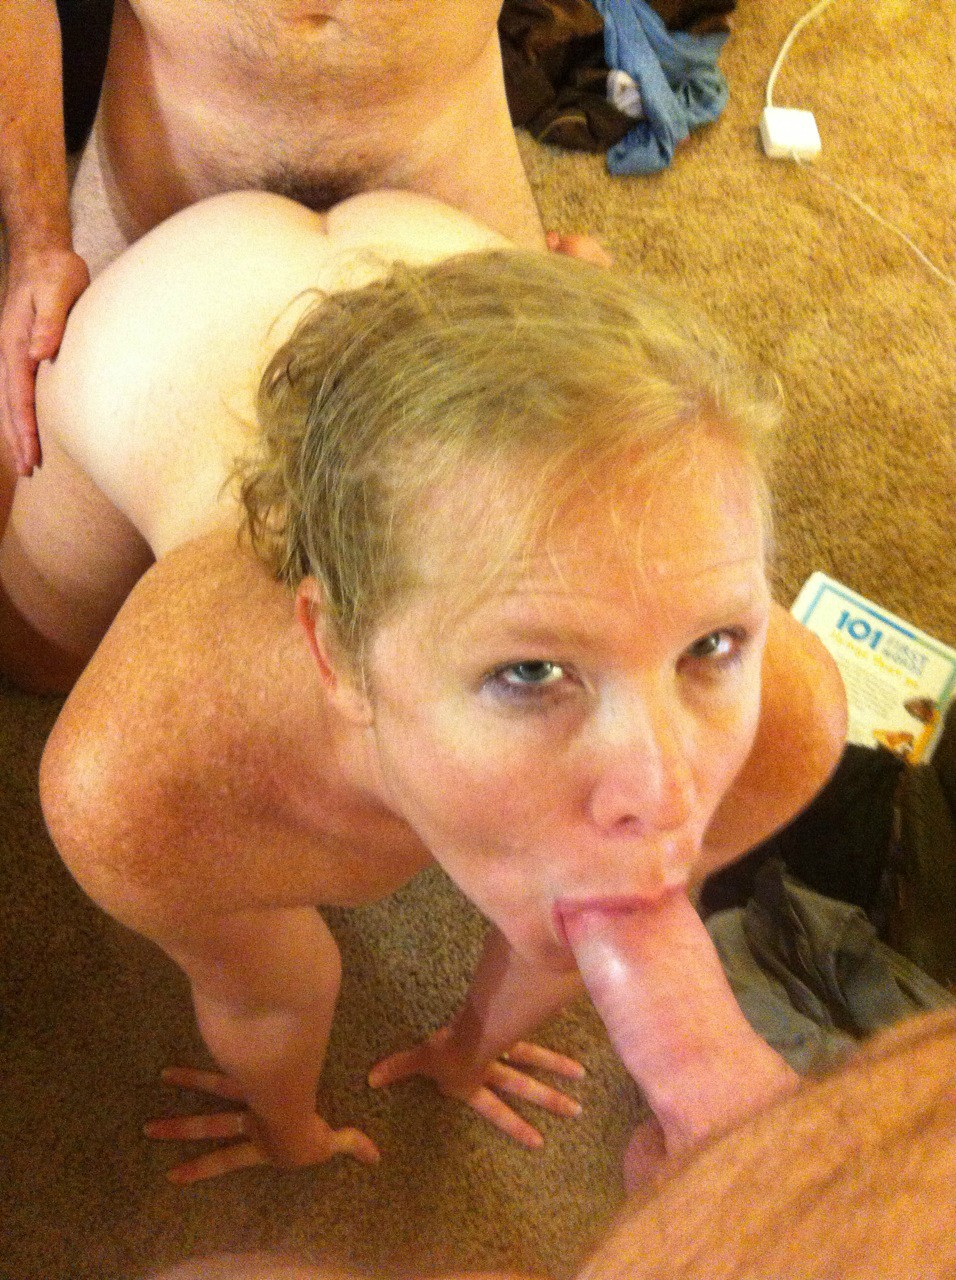 pat shows us her hairy pussy